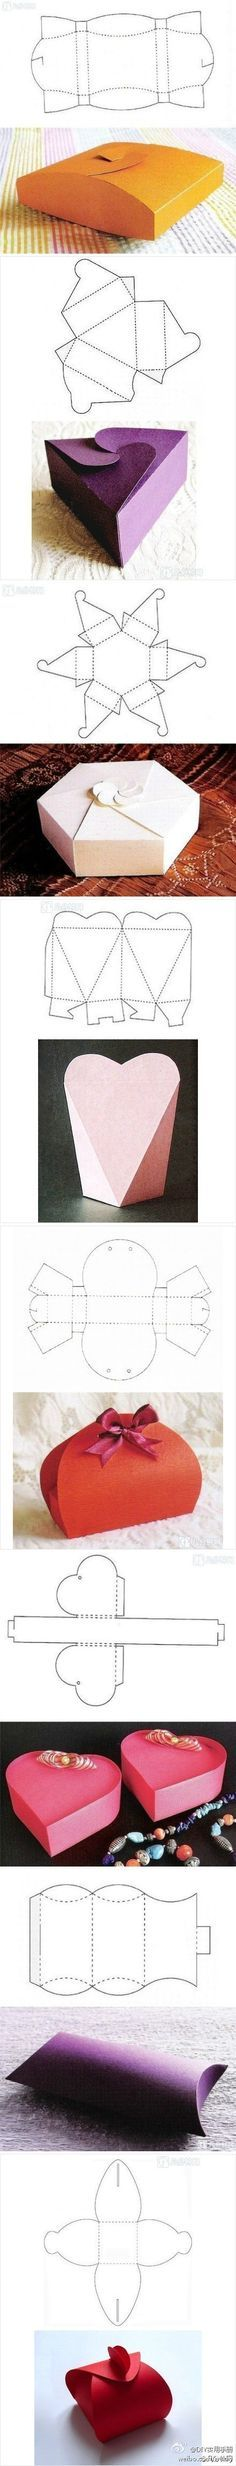 "Homemade Boxes~  These templates and examples have to be manipulated a bit for use.  However, once I found one I liked, I was able to ""Google"" a downloadable template.  For example, the second box from the bottom using purple paper, is called a ""pillow box.""  I found a template for that type of box at this link:     http://www.homemade-gifts-made-easy.com/gift-box-templates.html#.U1RQIFePROU"